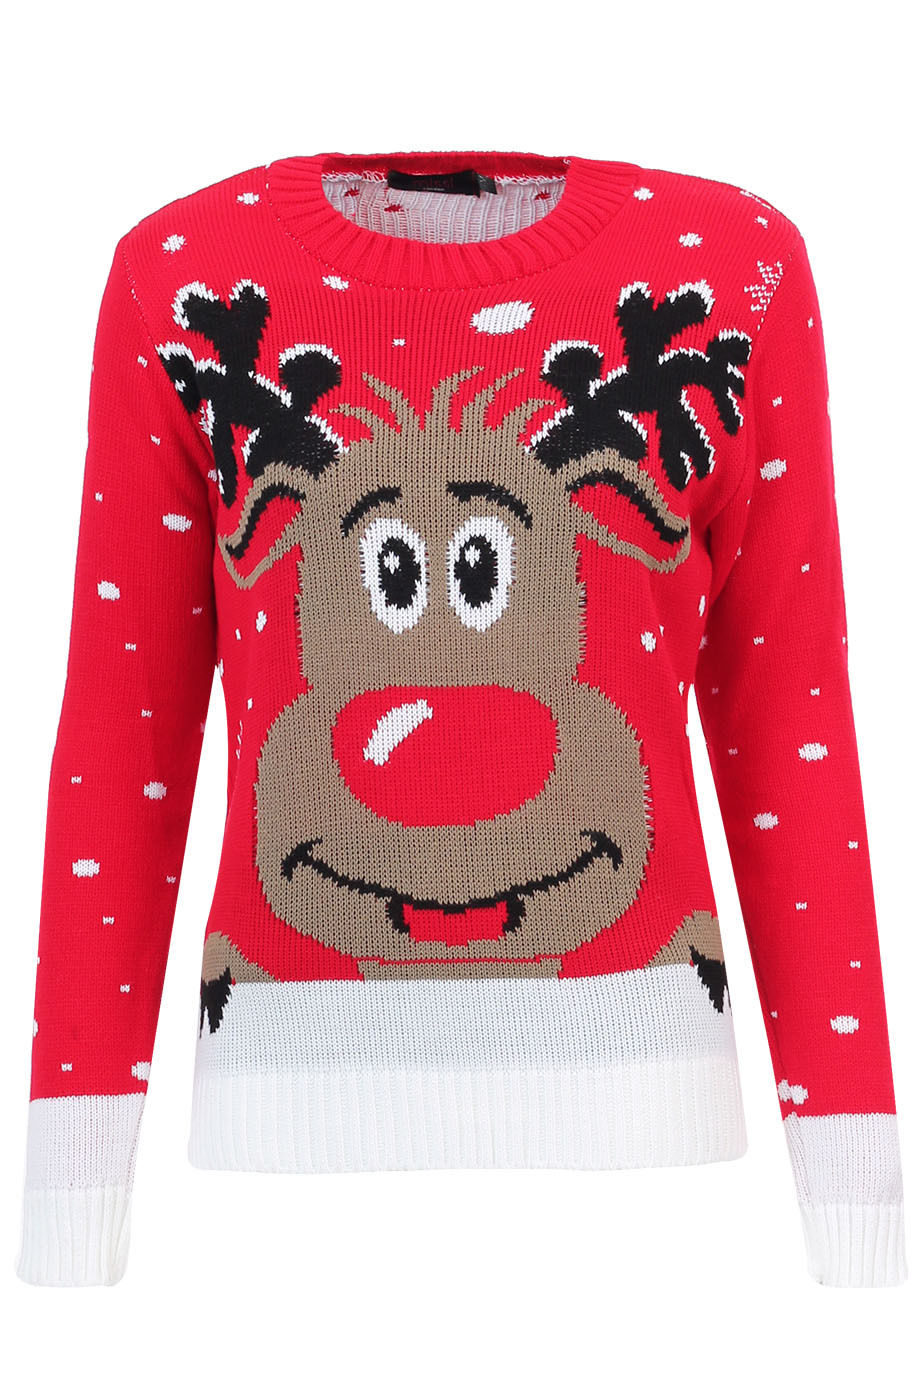 Knitting Patterns For Novelty Christmas Jumpers : Ladies Womens Vintage Sweater Olaf Novelty Knitted Winter Christmas Jumper To...